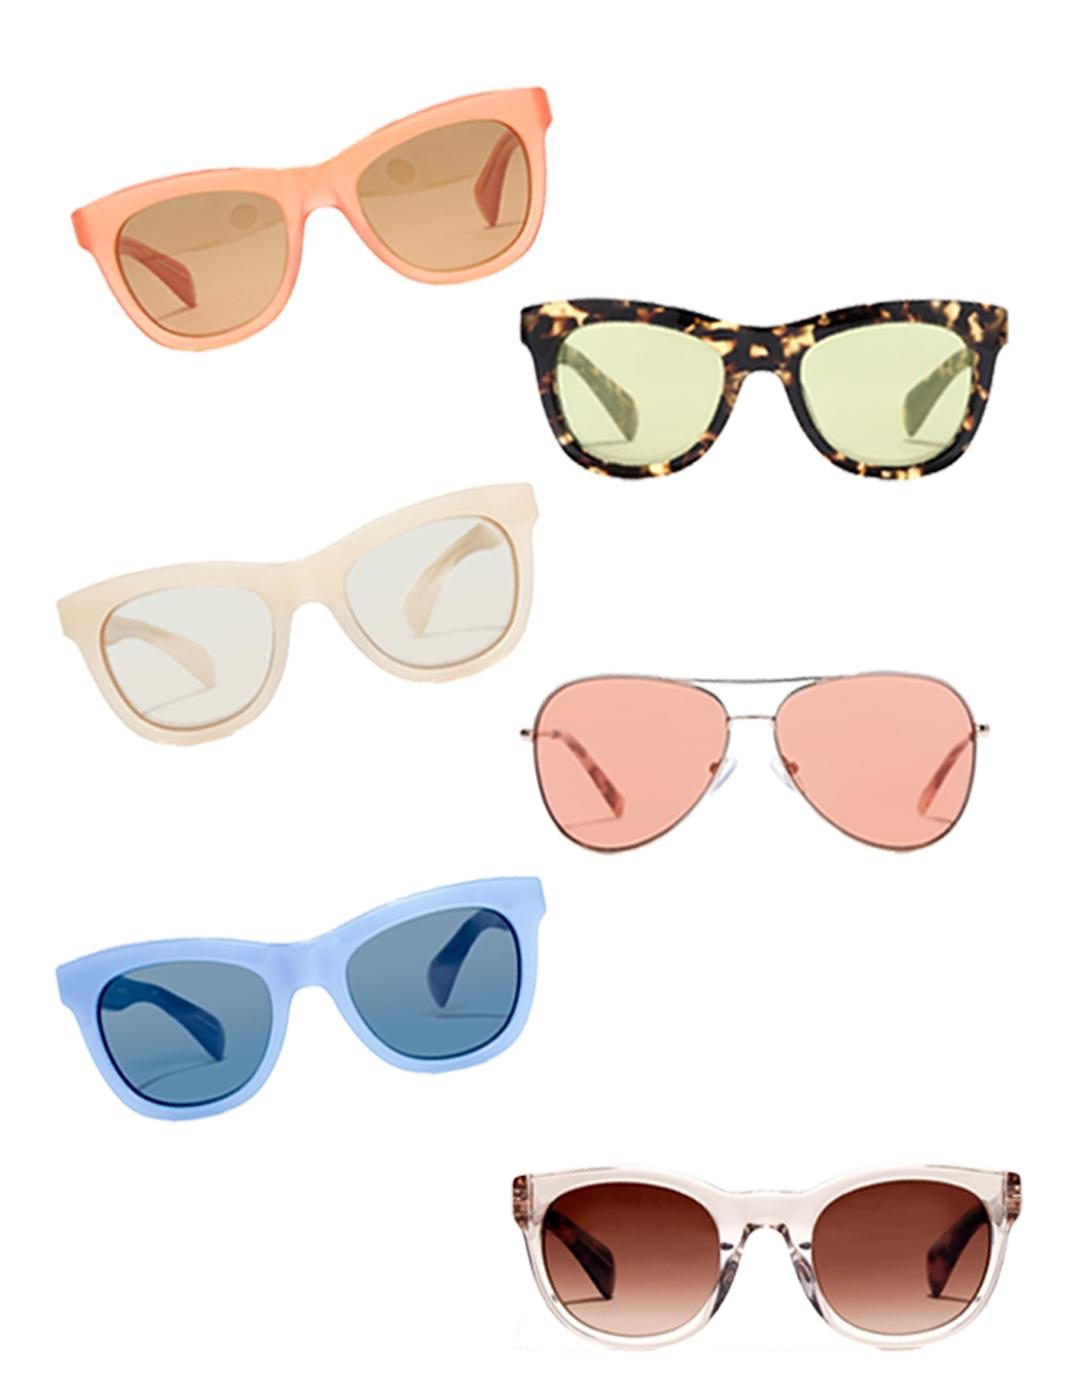 e270533591f4 Get Your Essential Summer Sunglasses on Sale Now - Economy of Style